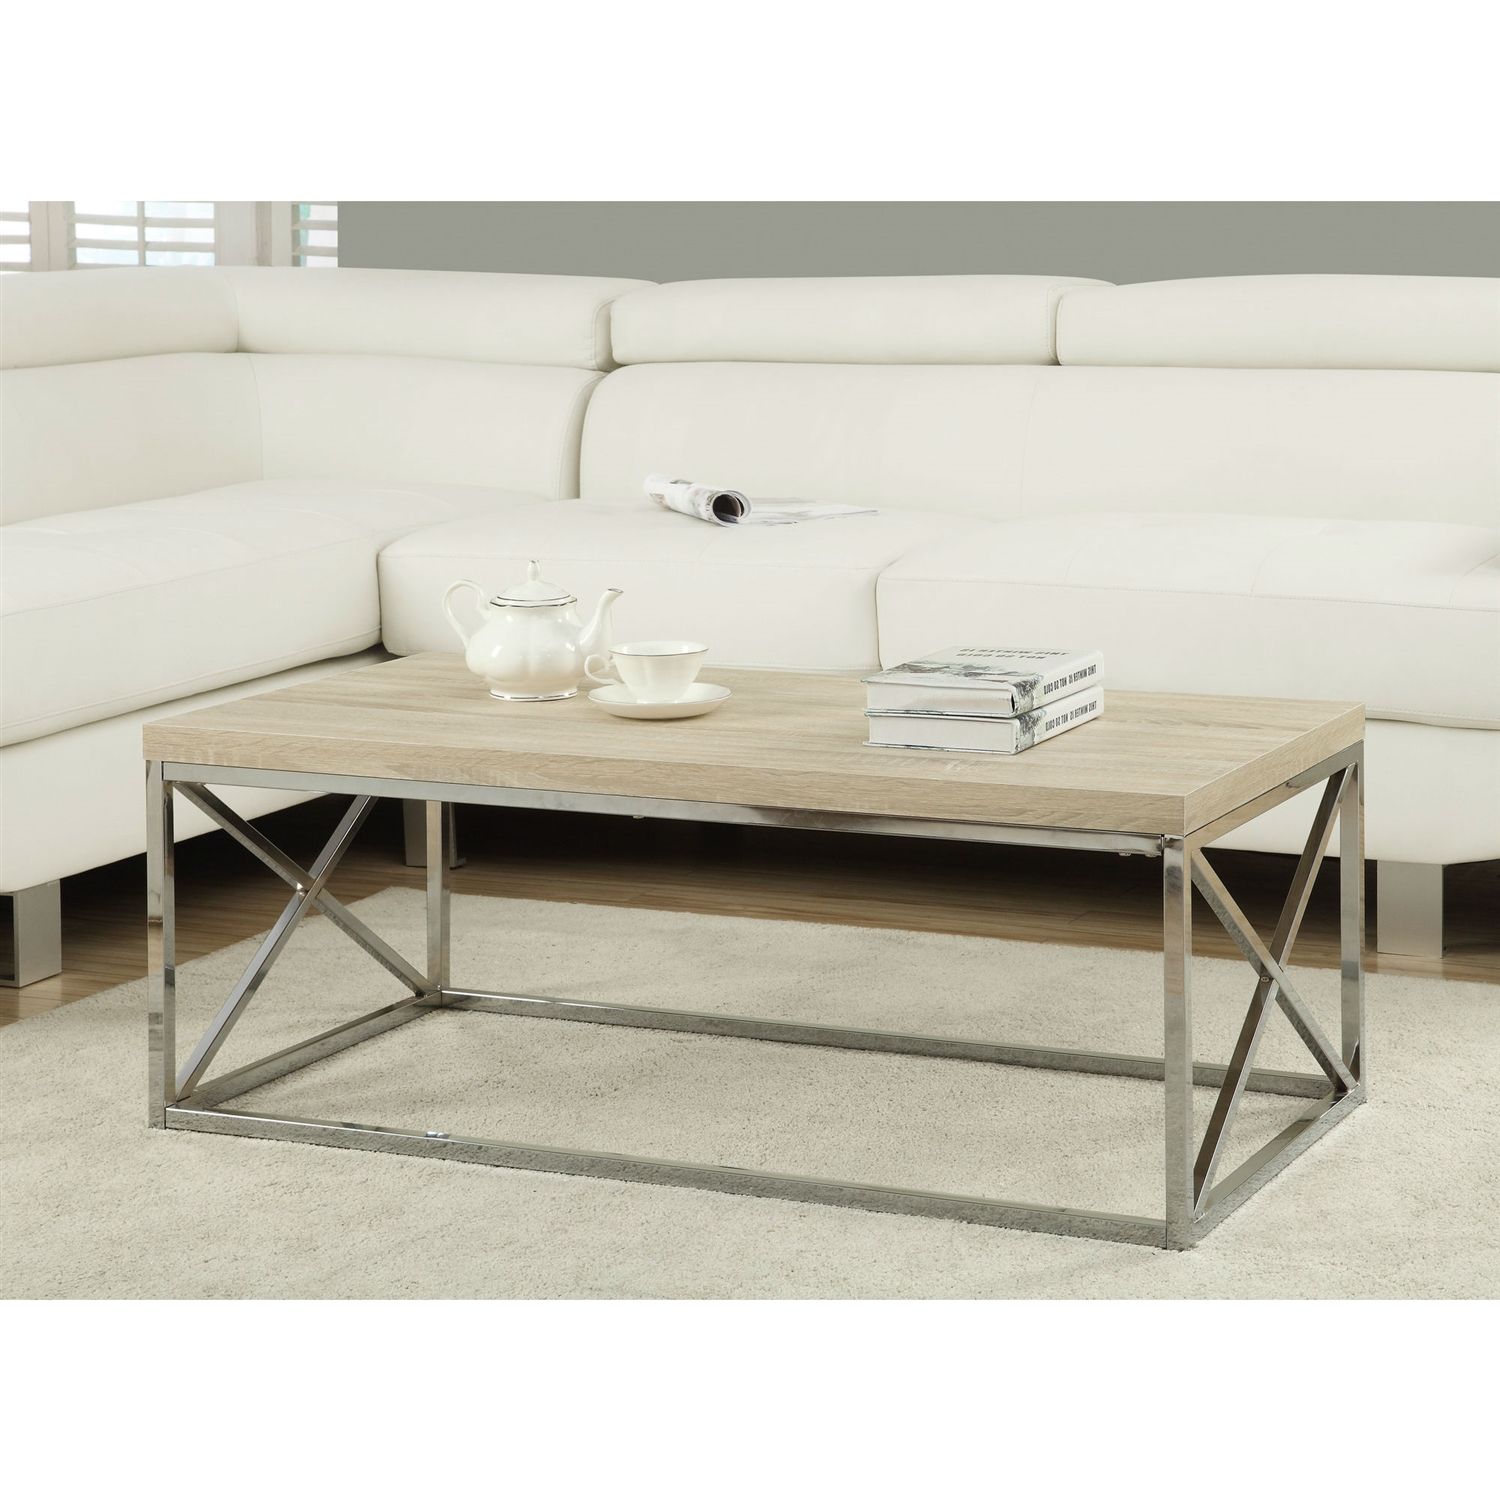 - Modern Rectangular Coffee Table With Natural Wood Top And Metal